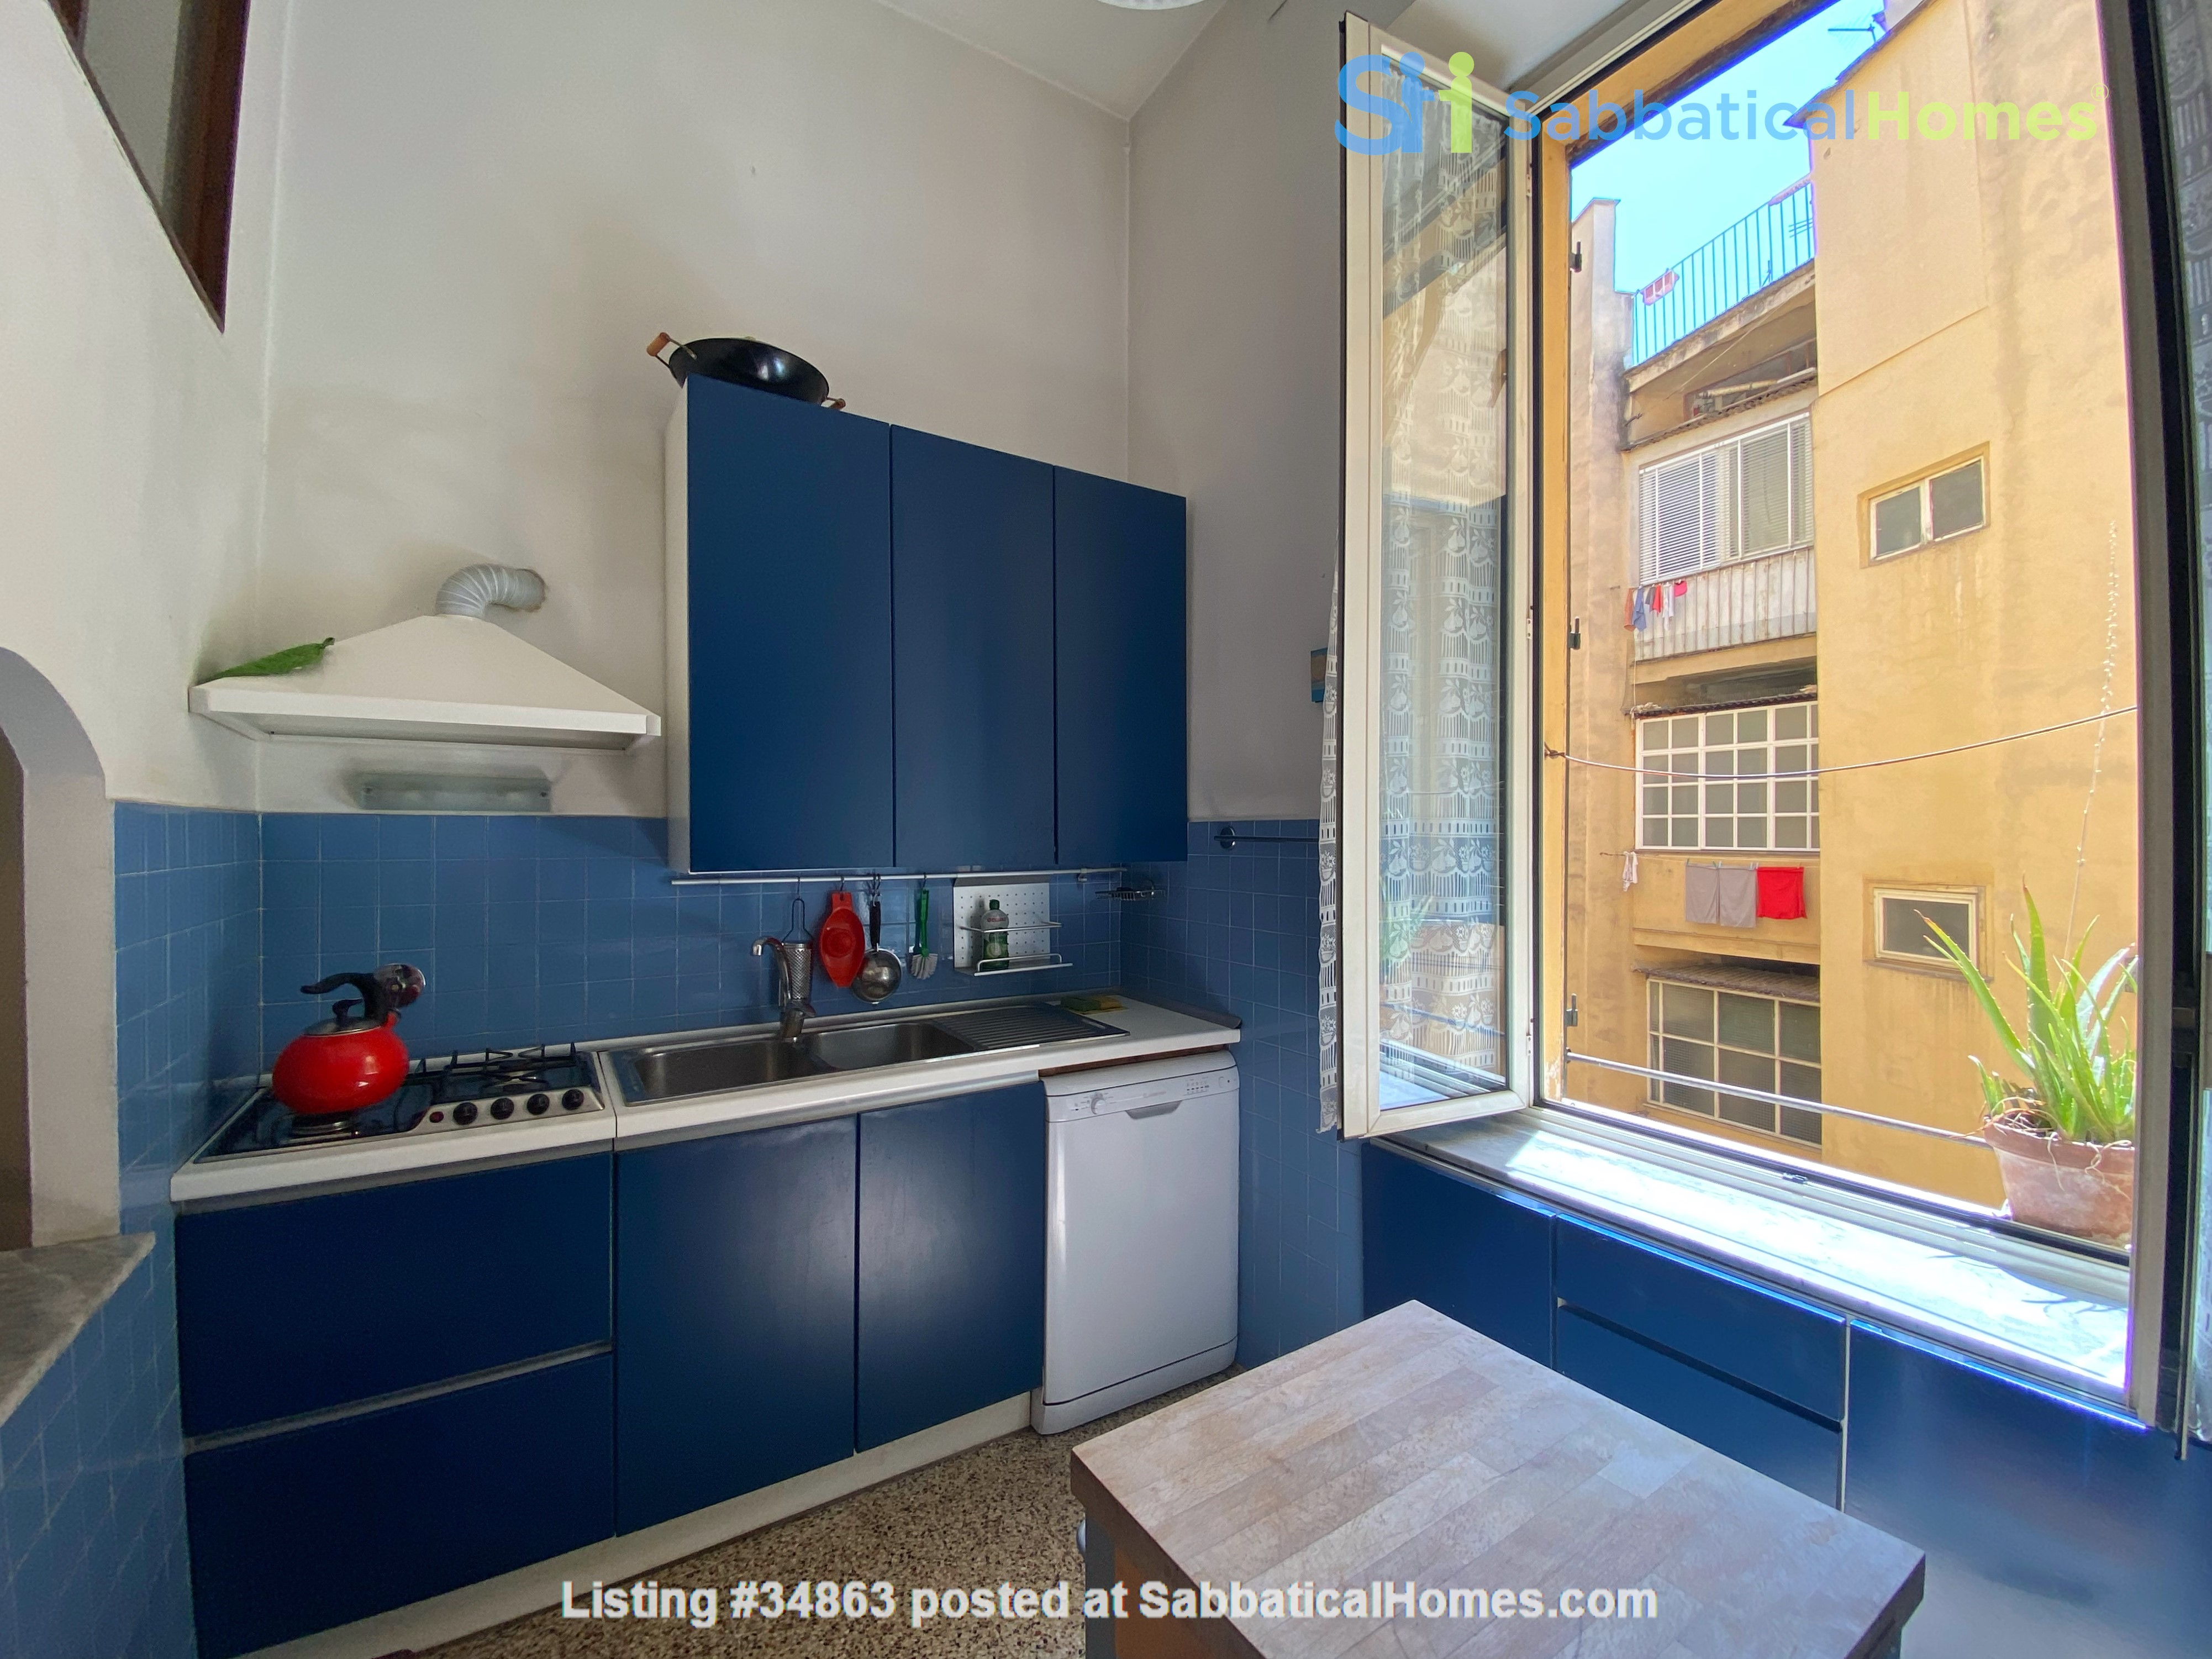 2 BR, 2 BA, spacious and comfortable apartment in Rome, Trastevere Home Rental in Rome 2